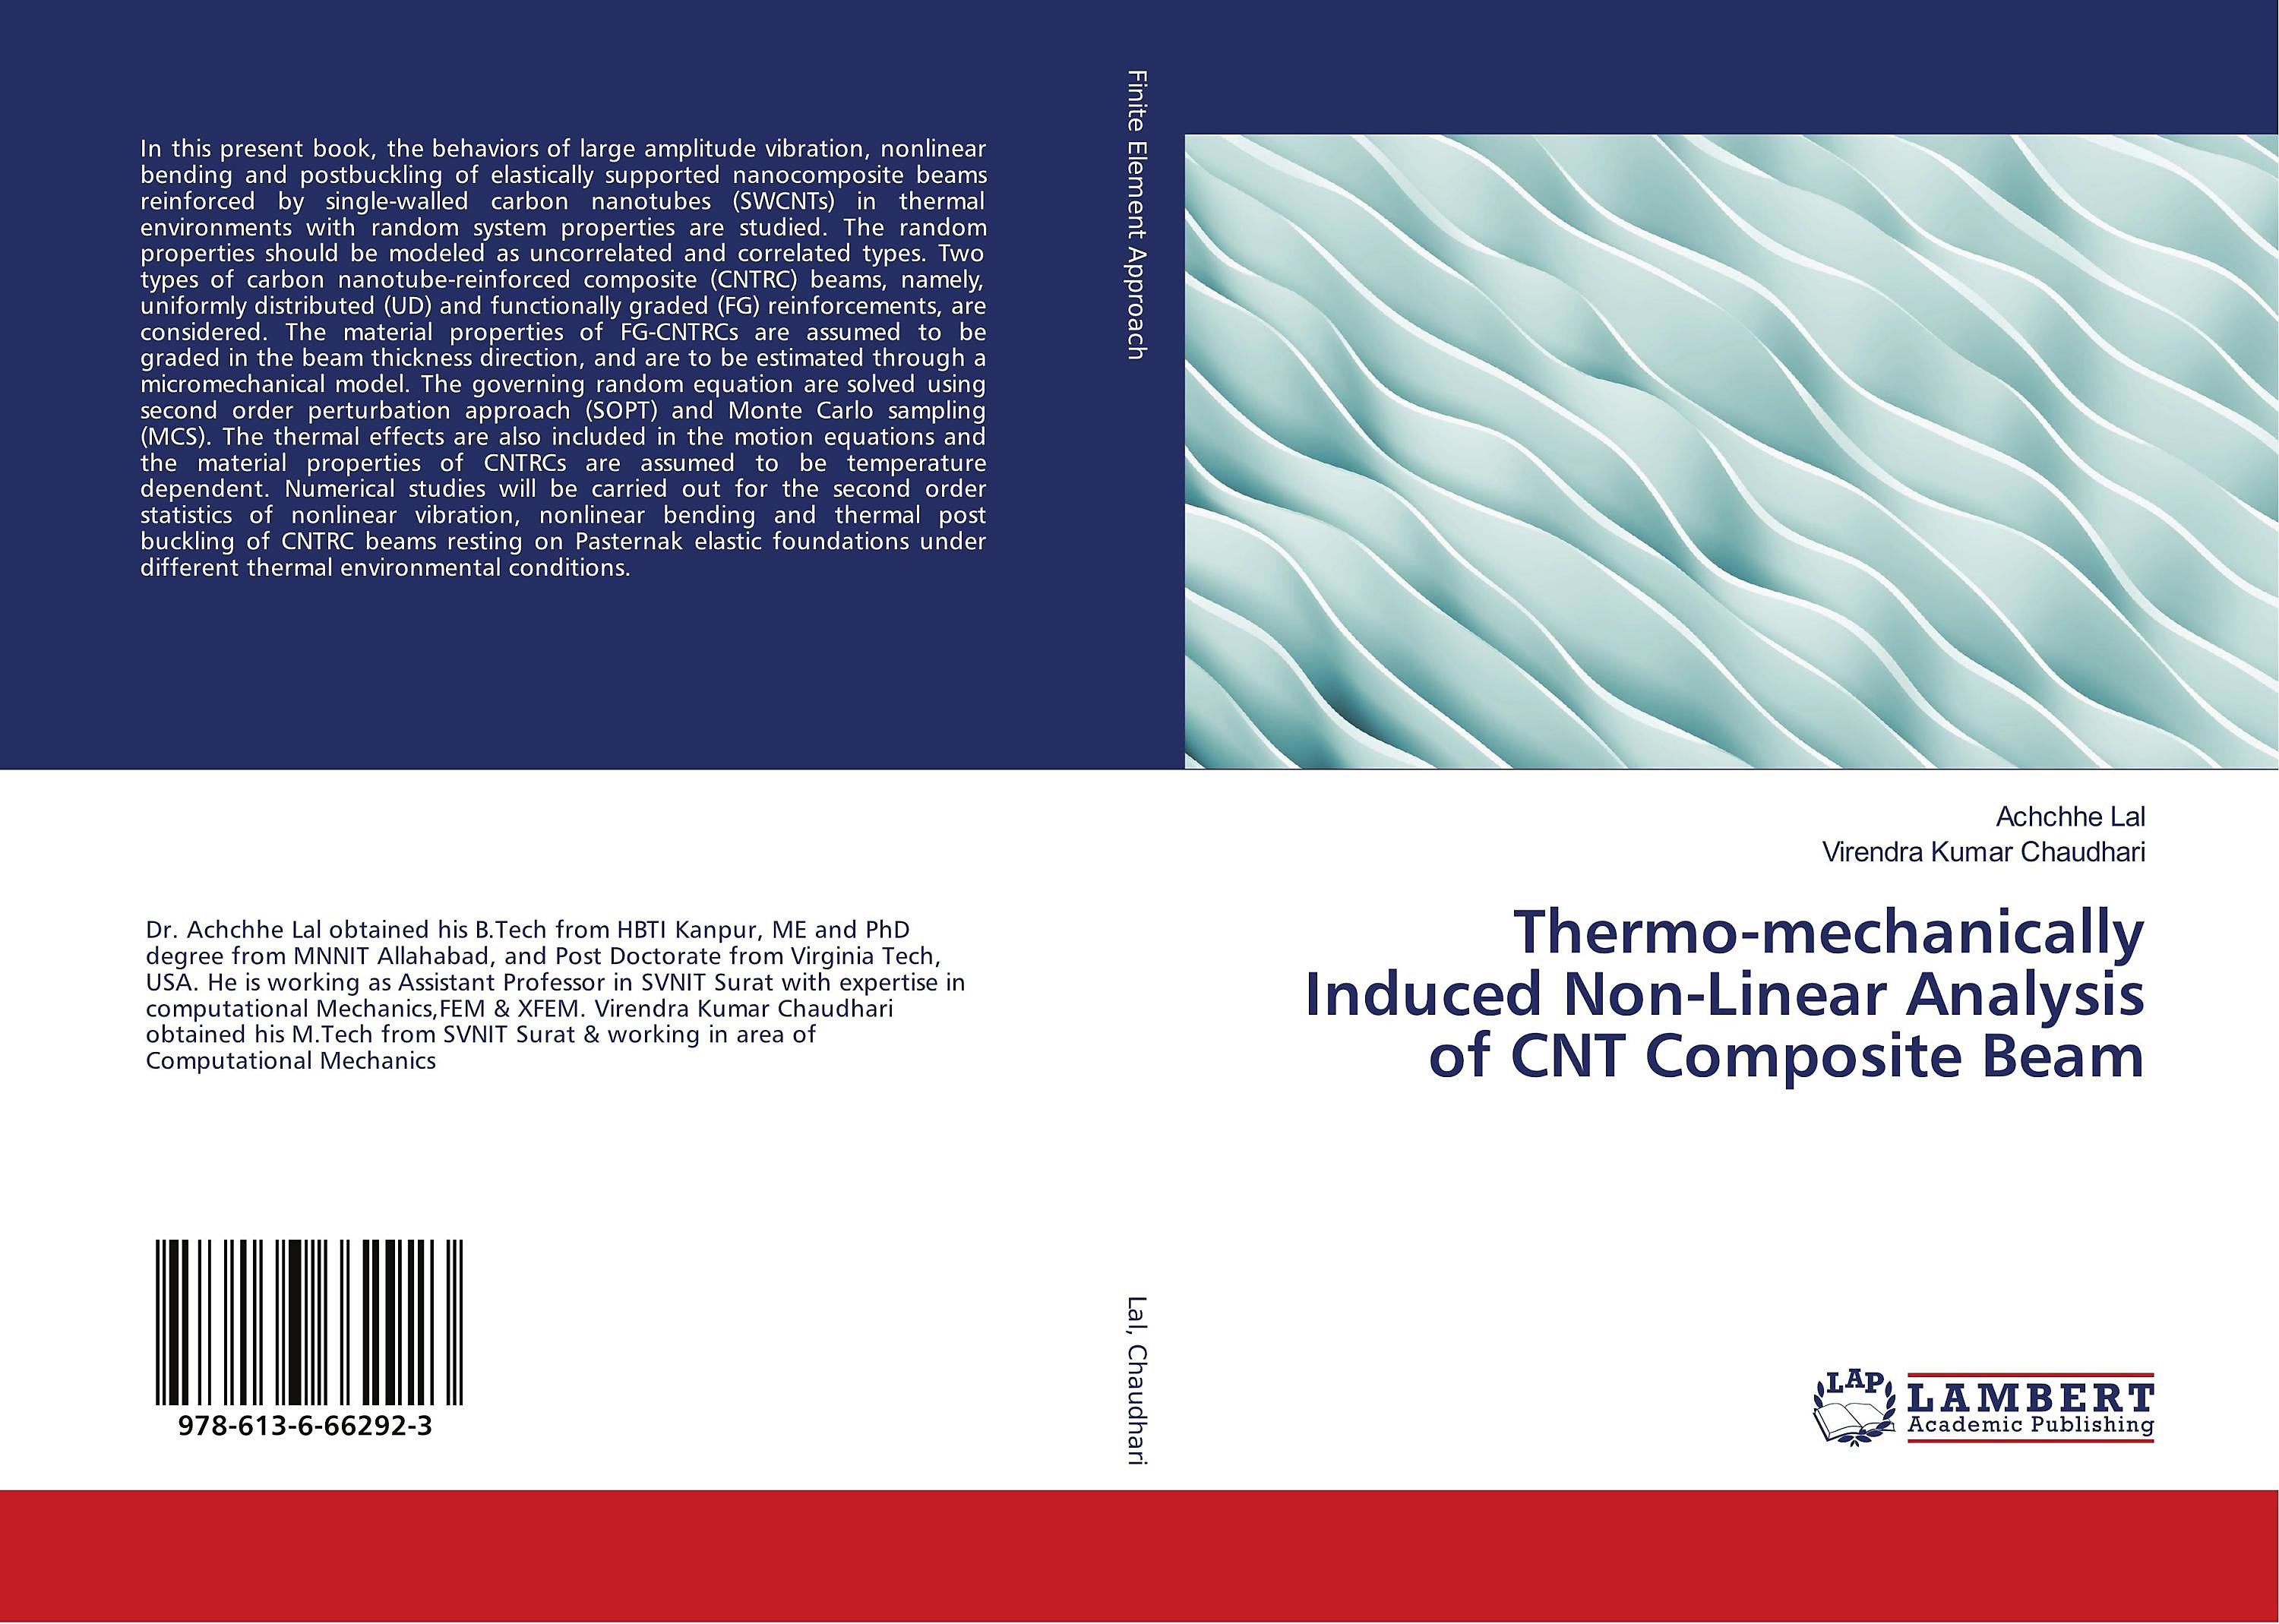 Thermo-mechanically Induced Non-Linear Analysis of CNT